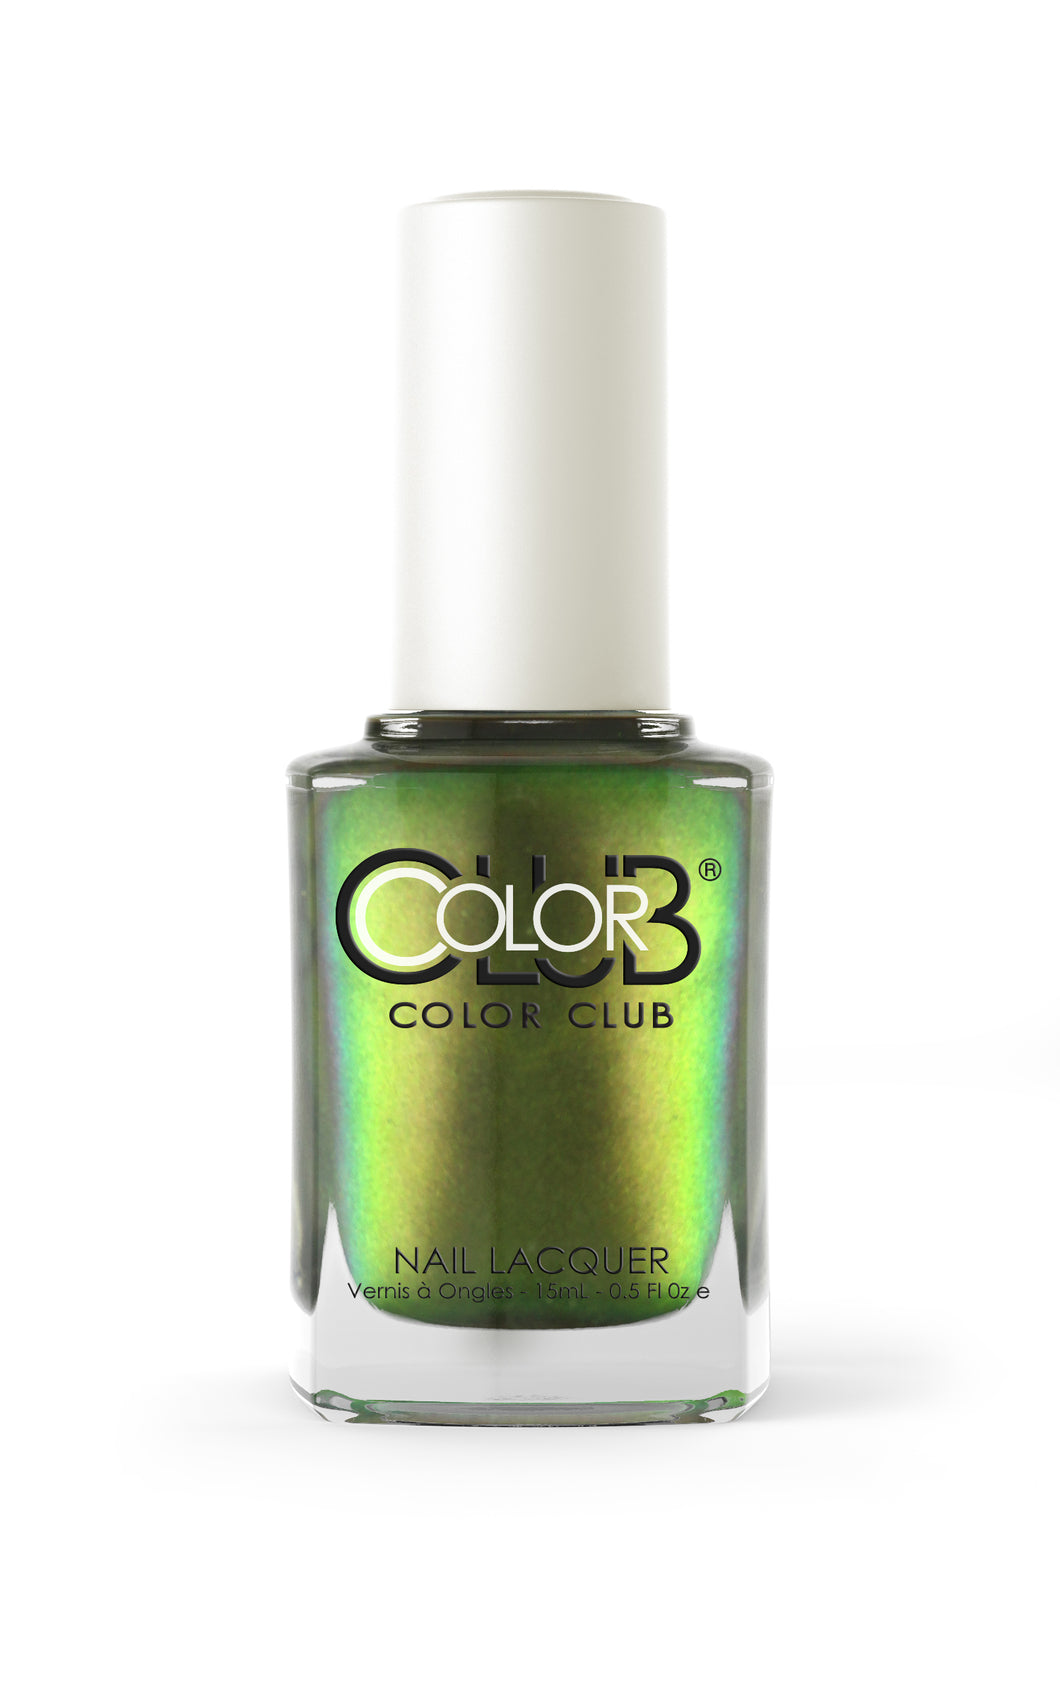 Nagellack Color Club TriChrome - Don't kale my Vibe #05ALS19 - Kollektion Oil Slick